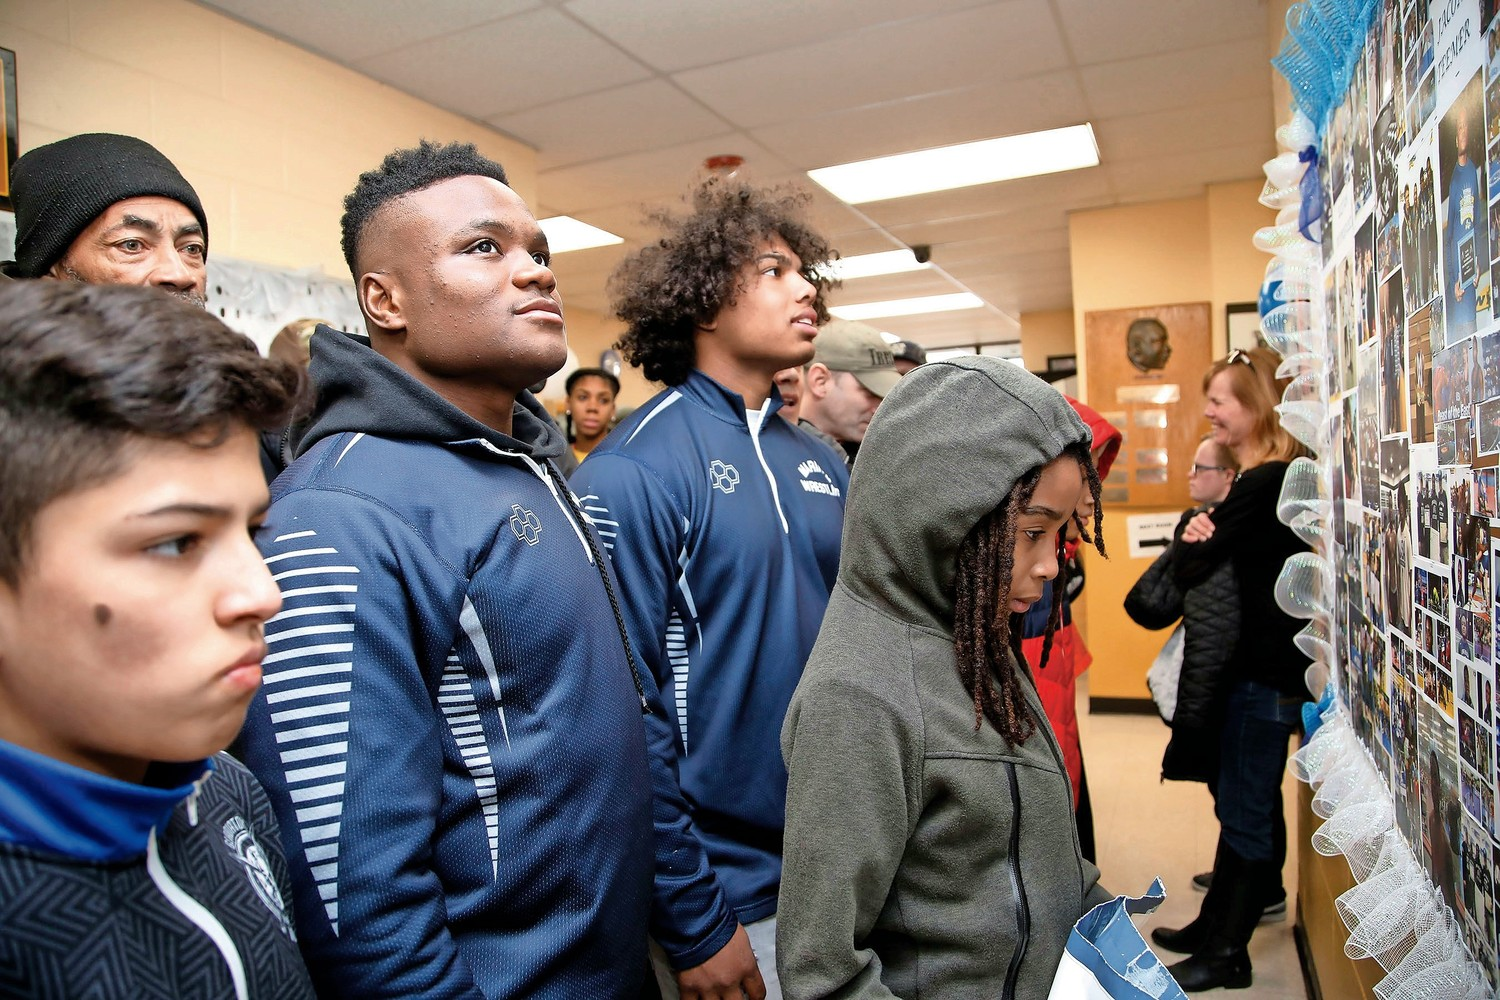 Jacori Teemer, Elijah Rodriguez and others observed the photo board honoring the two state champions.